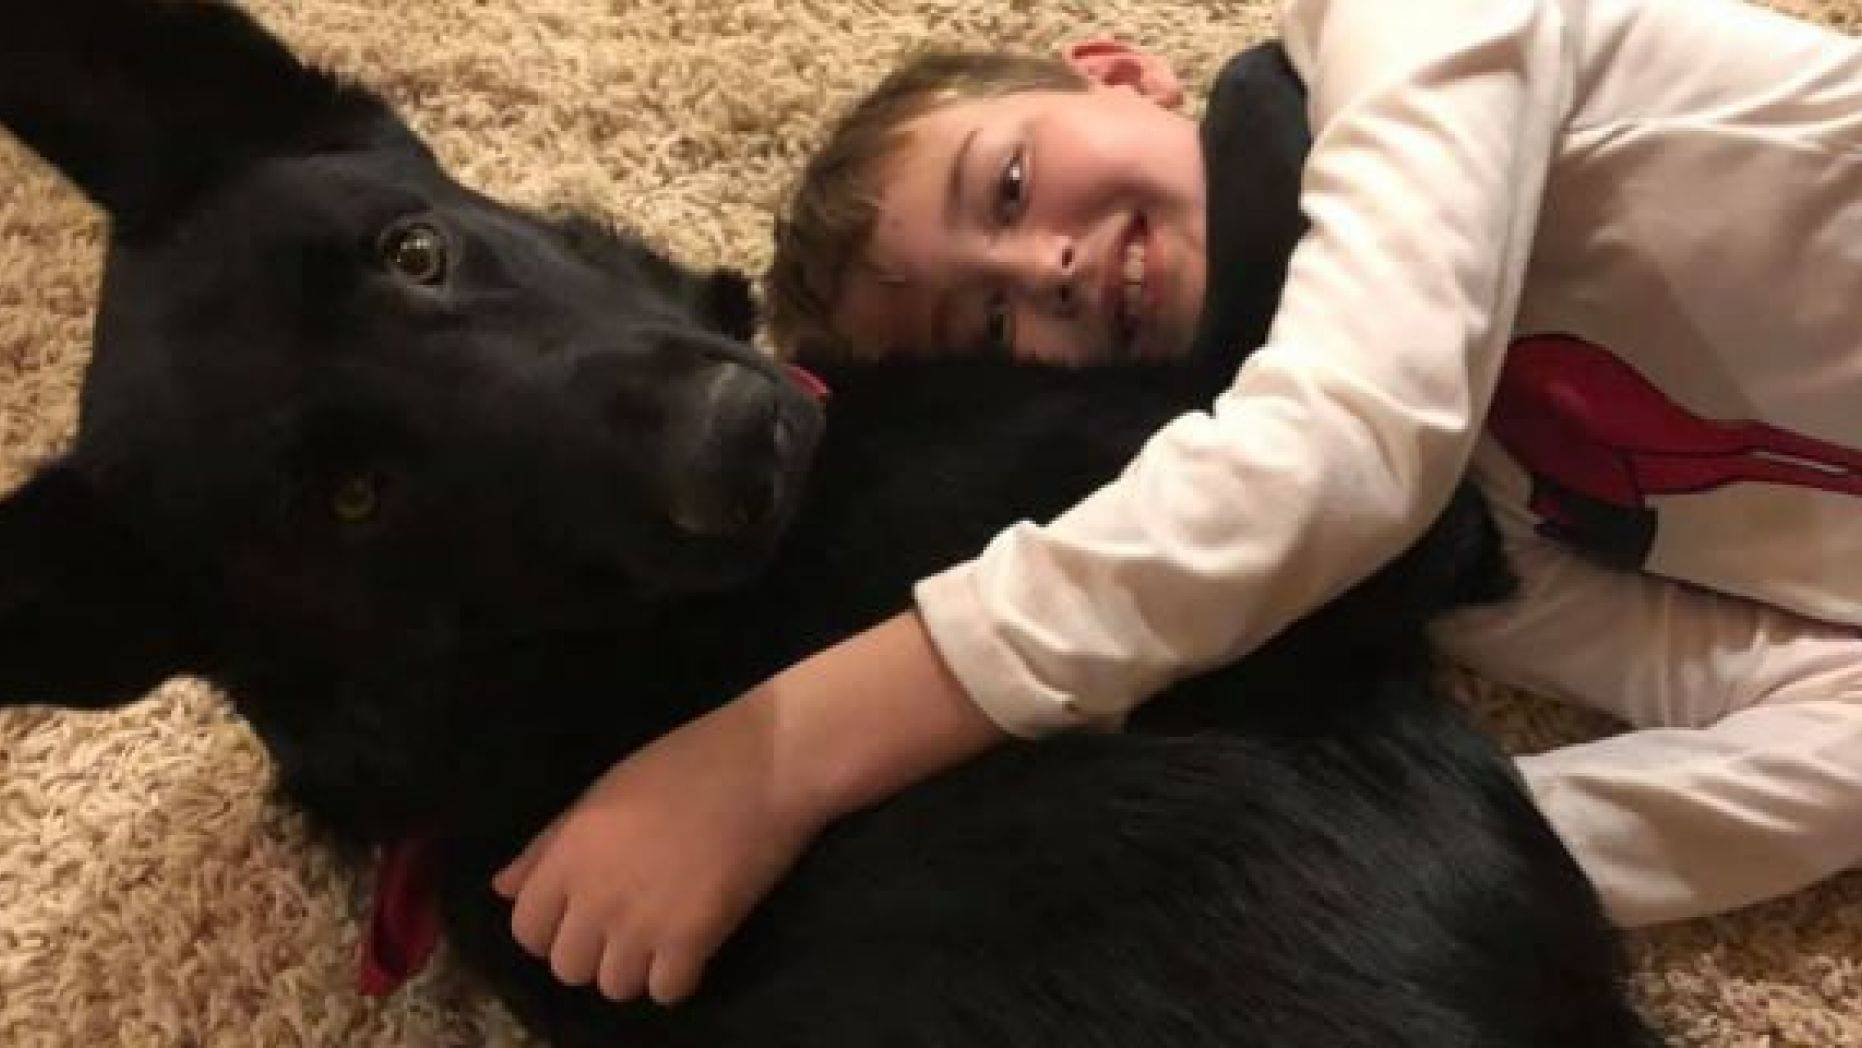 An 8-year-old North Carolina boy, who is receiving cancer treatment in Utah, was reunited with his beloved dog thanks to the kindness of a complete stranger.